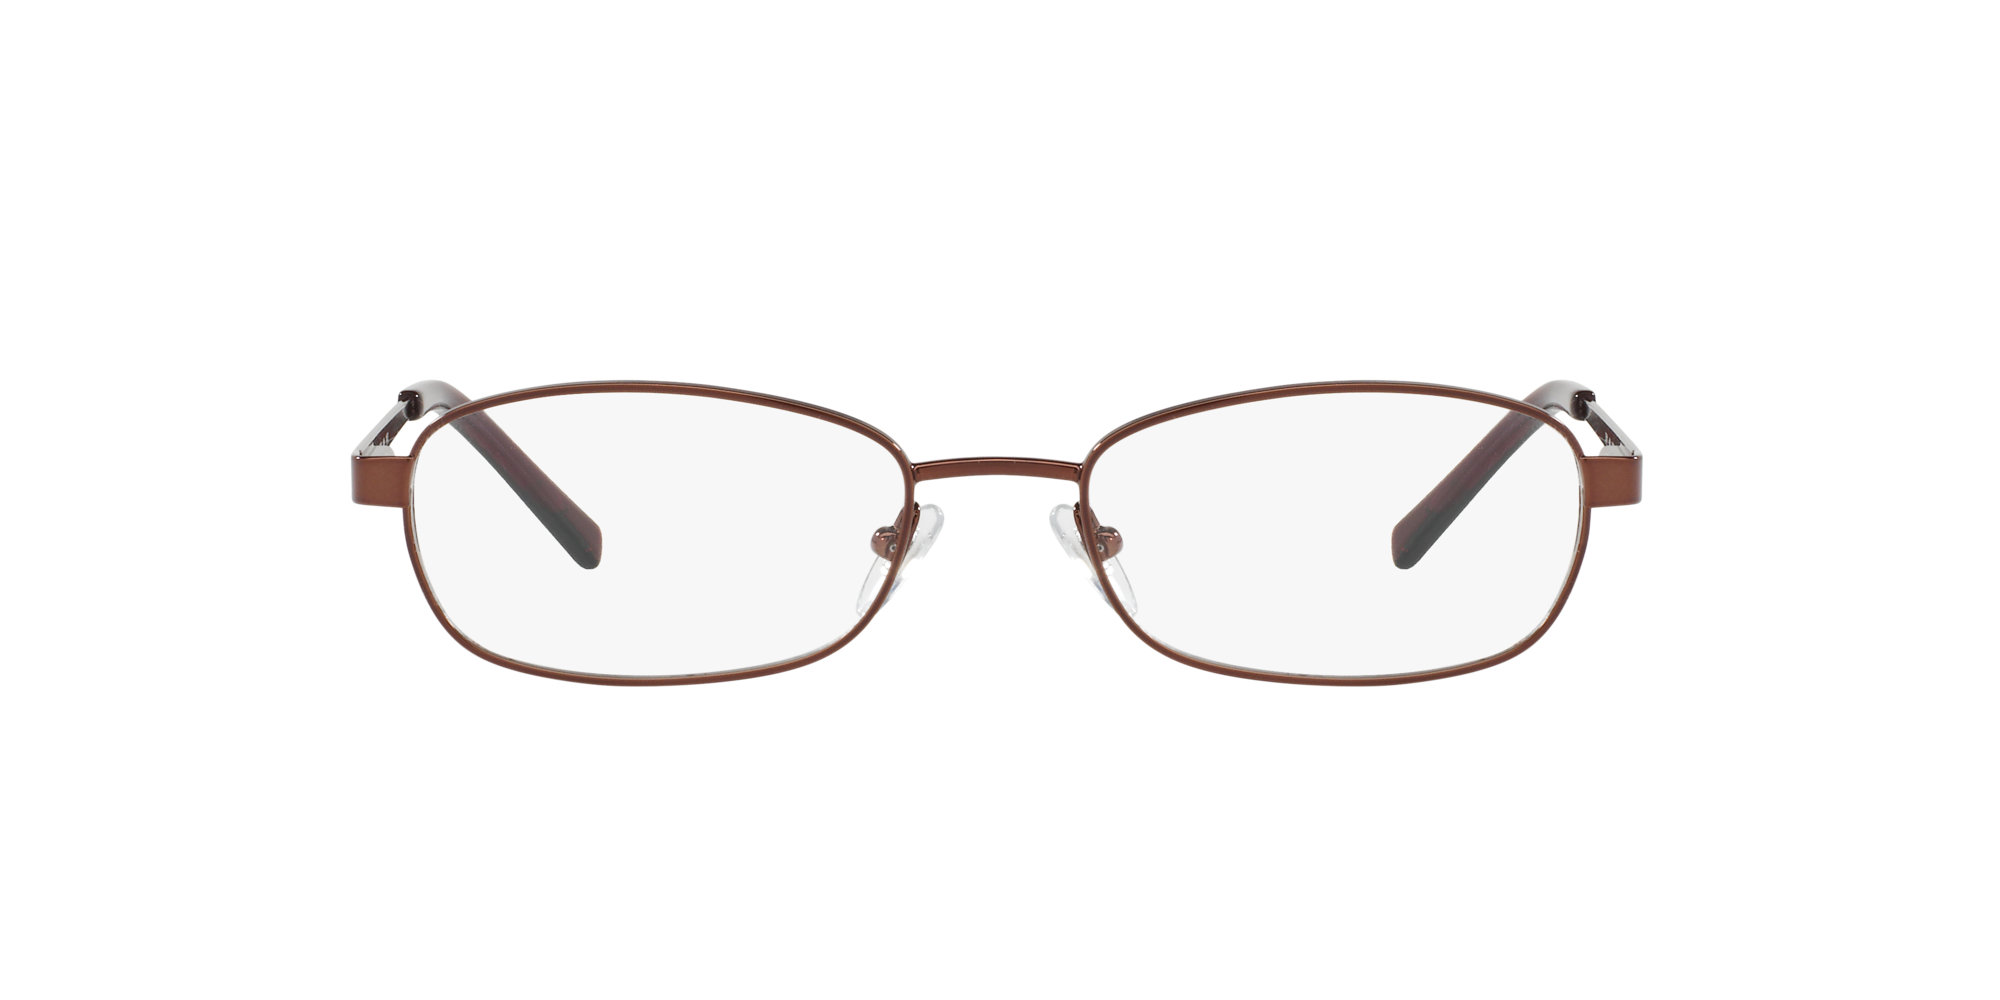 Image for SF2591 from LensCrafters | Glasses, Prescription Glasses Online, Eyewear